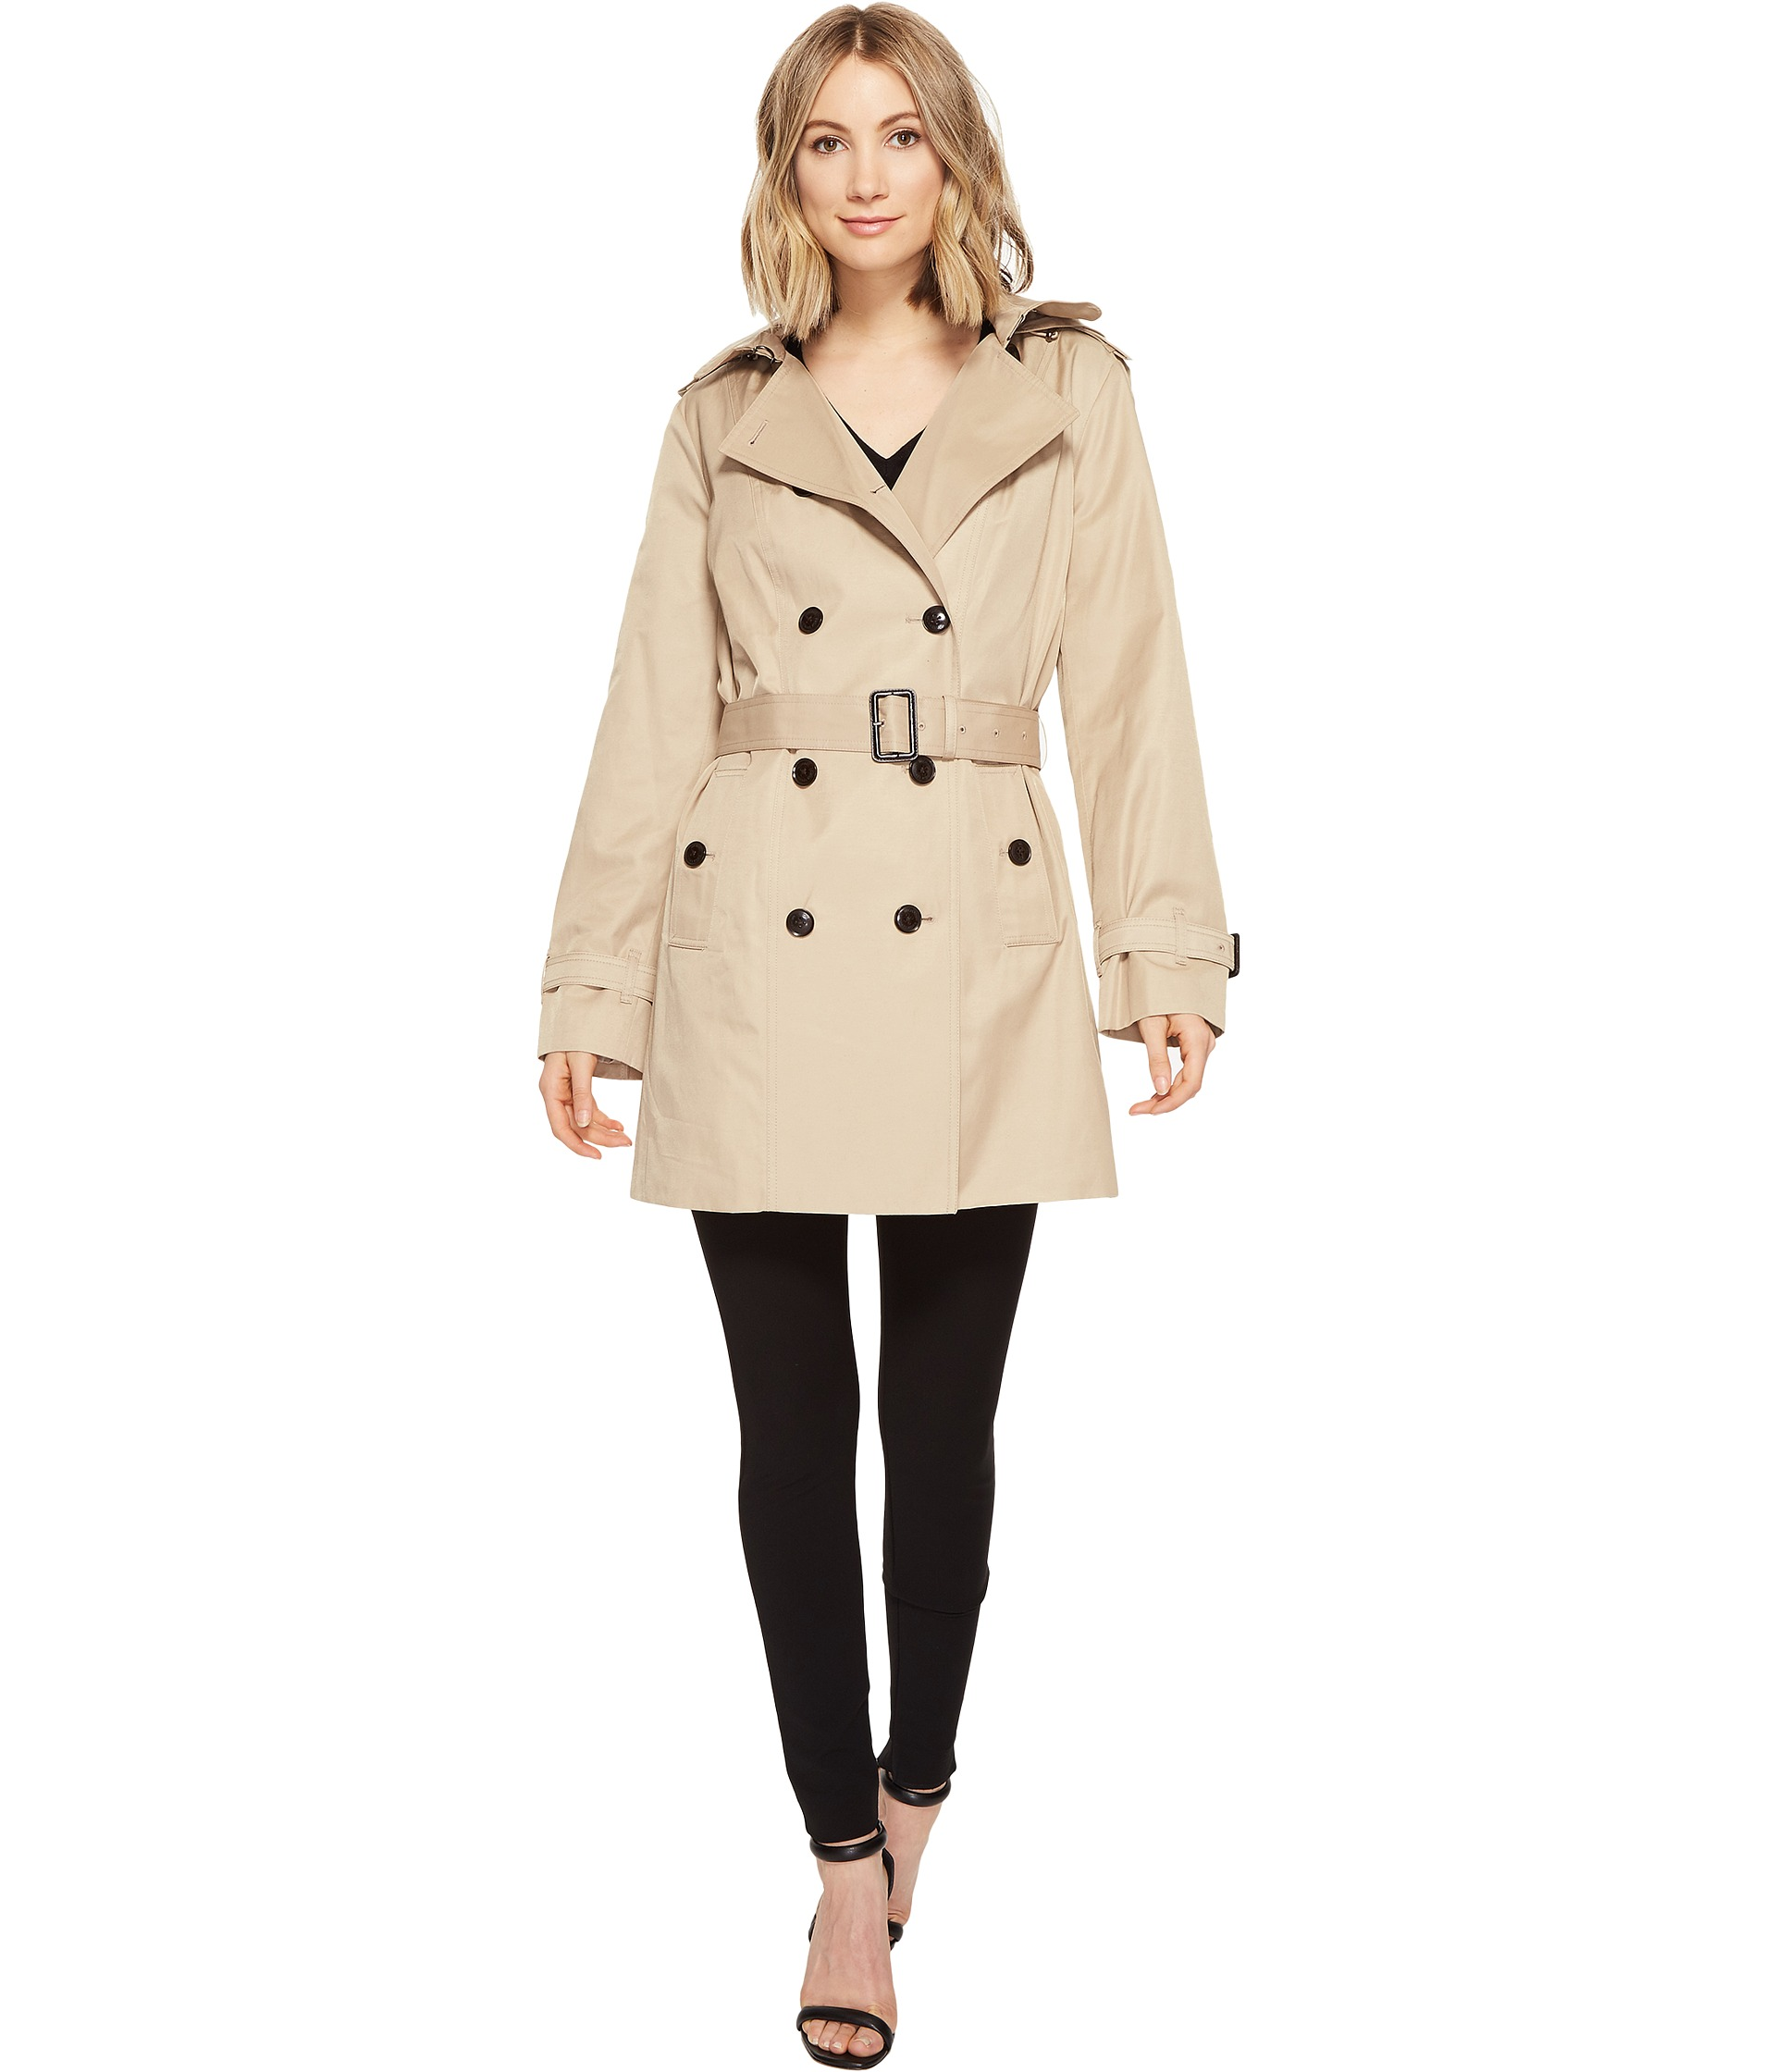 Michael Kors Trench Coat Removable Lining Tradingbasis